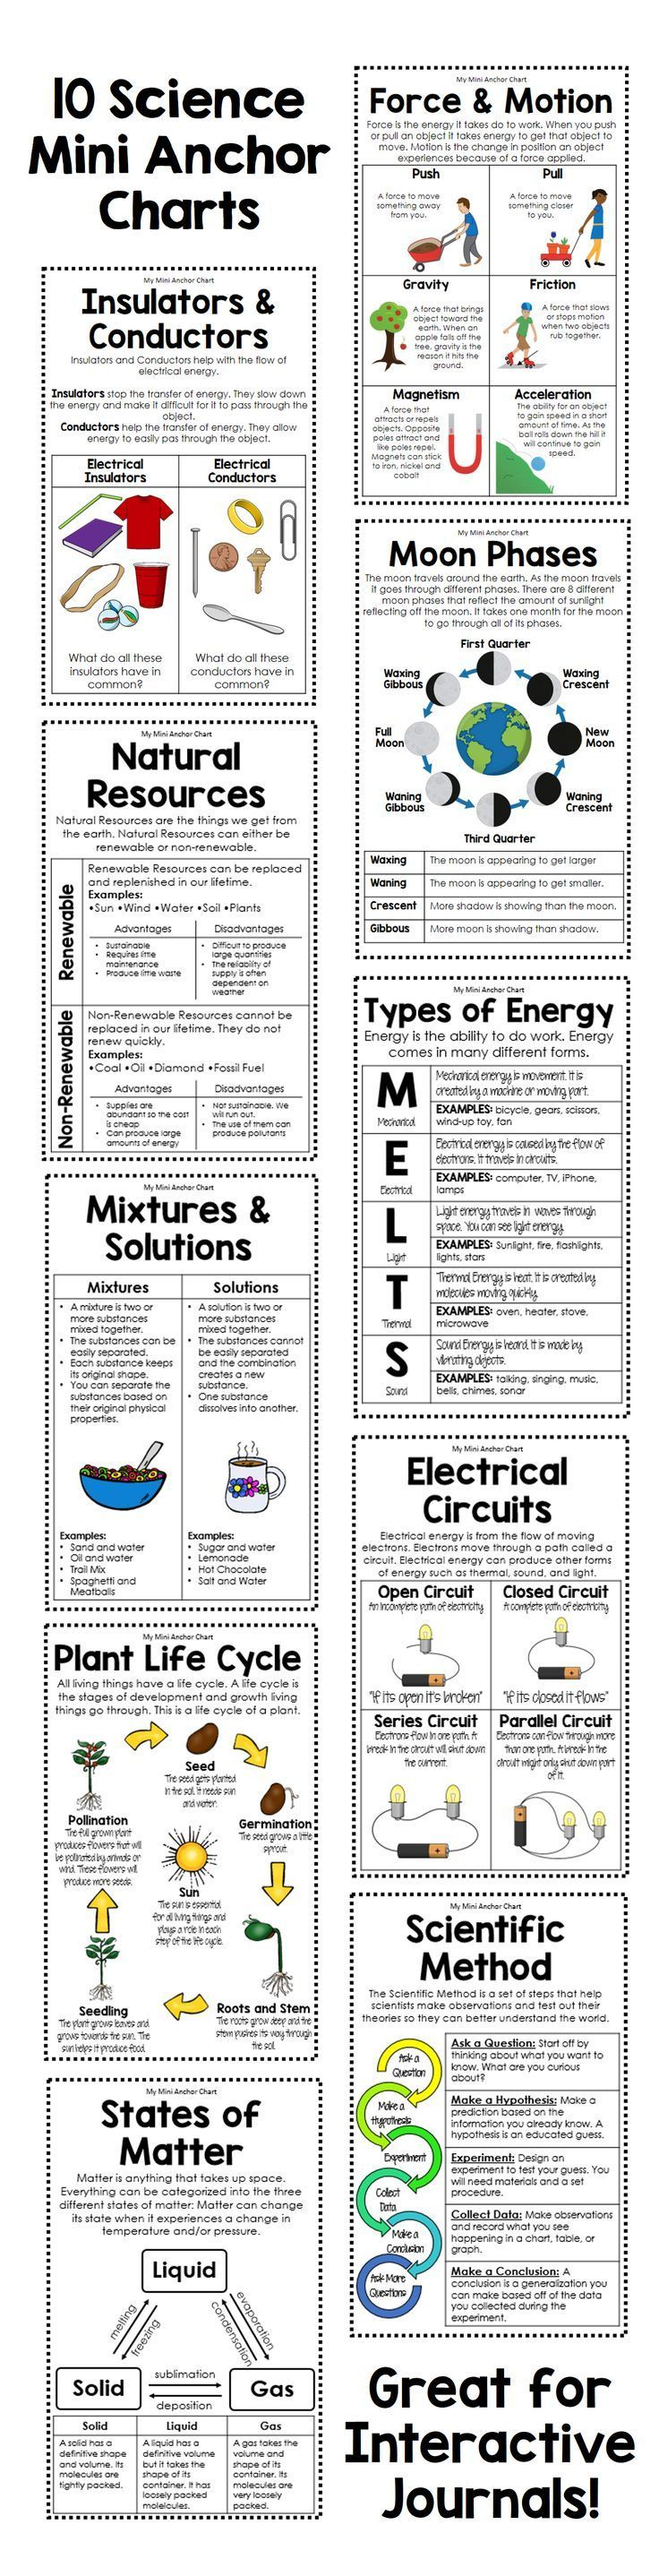 Get these 10 anchor charts to help your students remember important science concepts. Topics included: Force and Motion, Insulators and Conductors, Moon Phases, The Water Cycle, Plant Life Cycle, Natural Resources, Types of Energy, The Scientific Method,